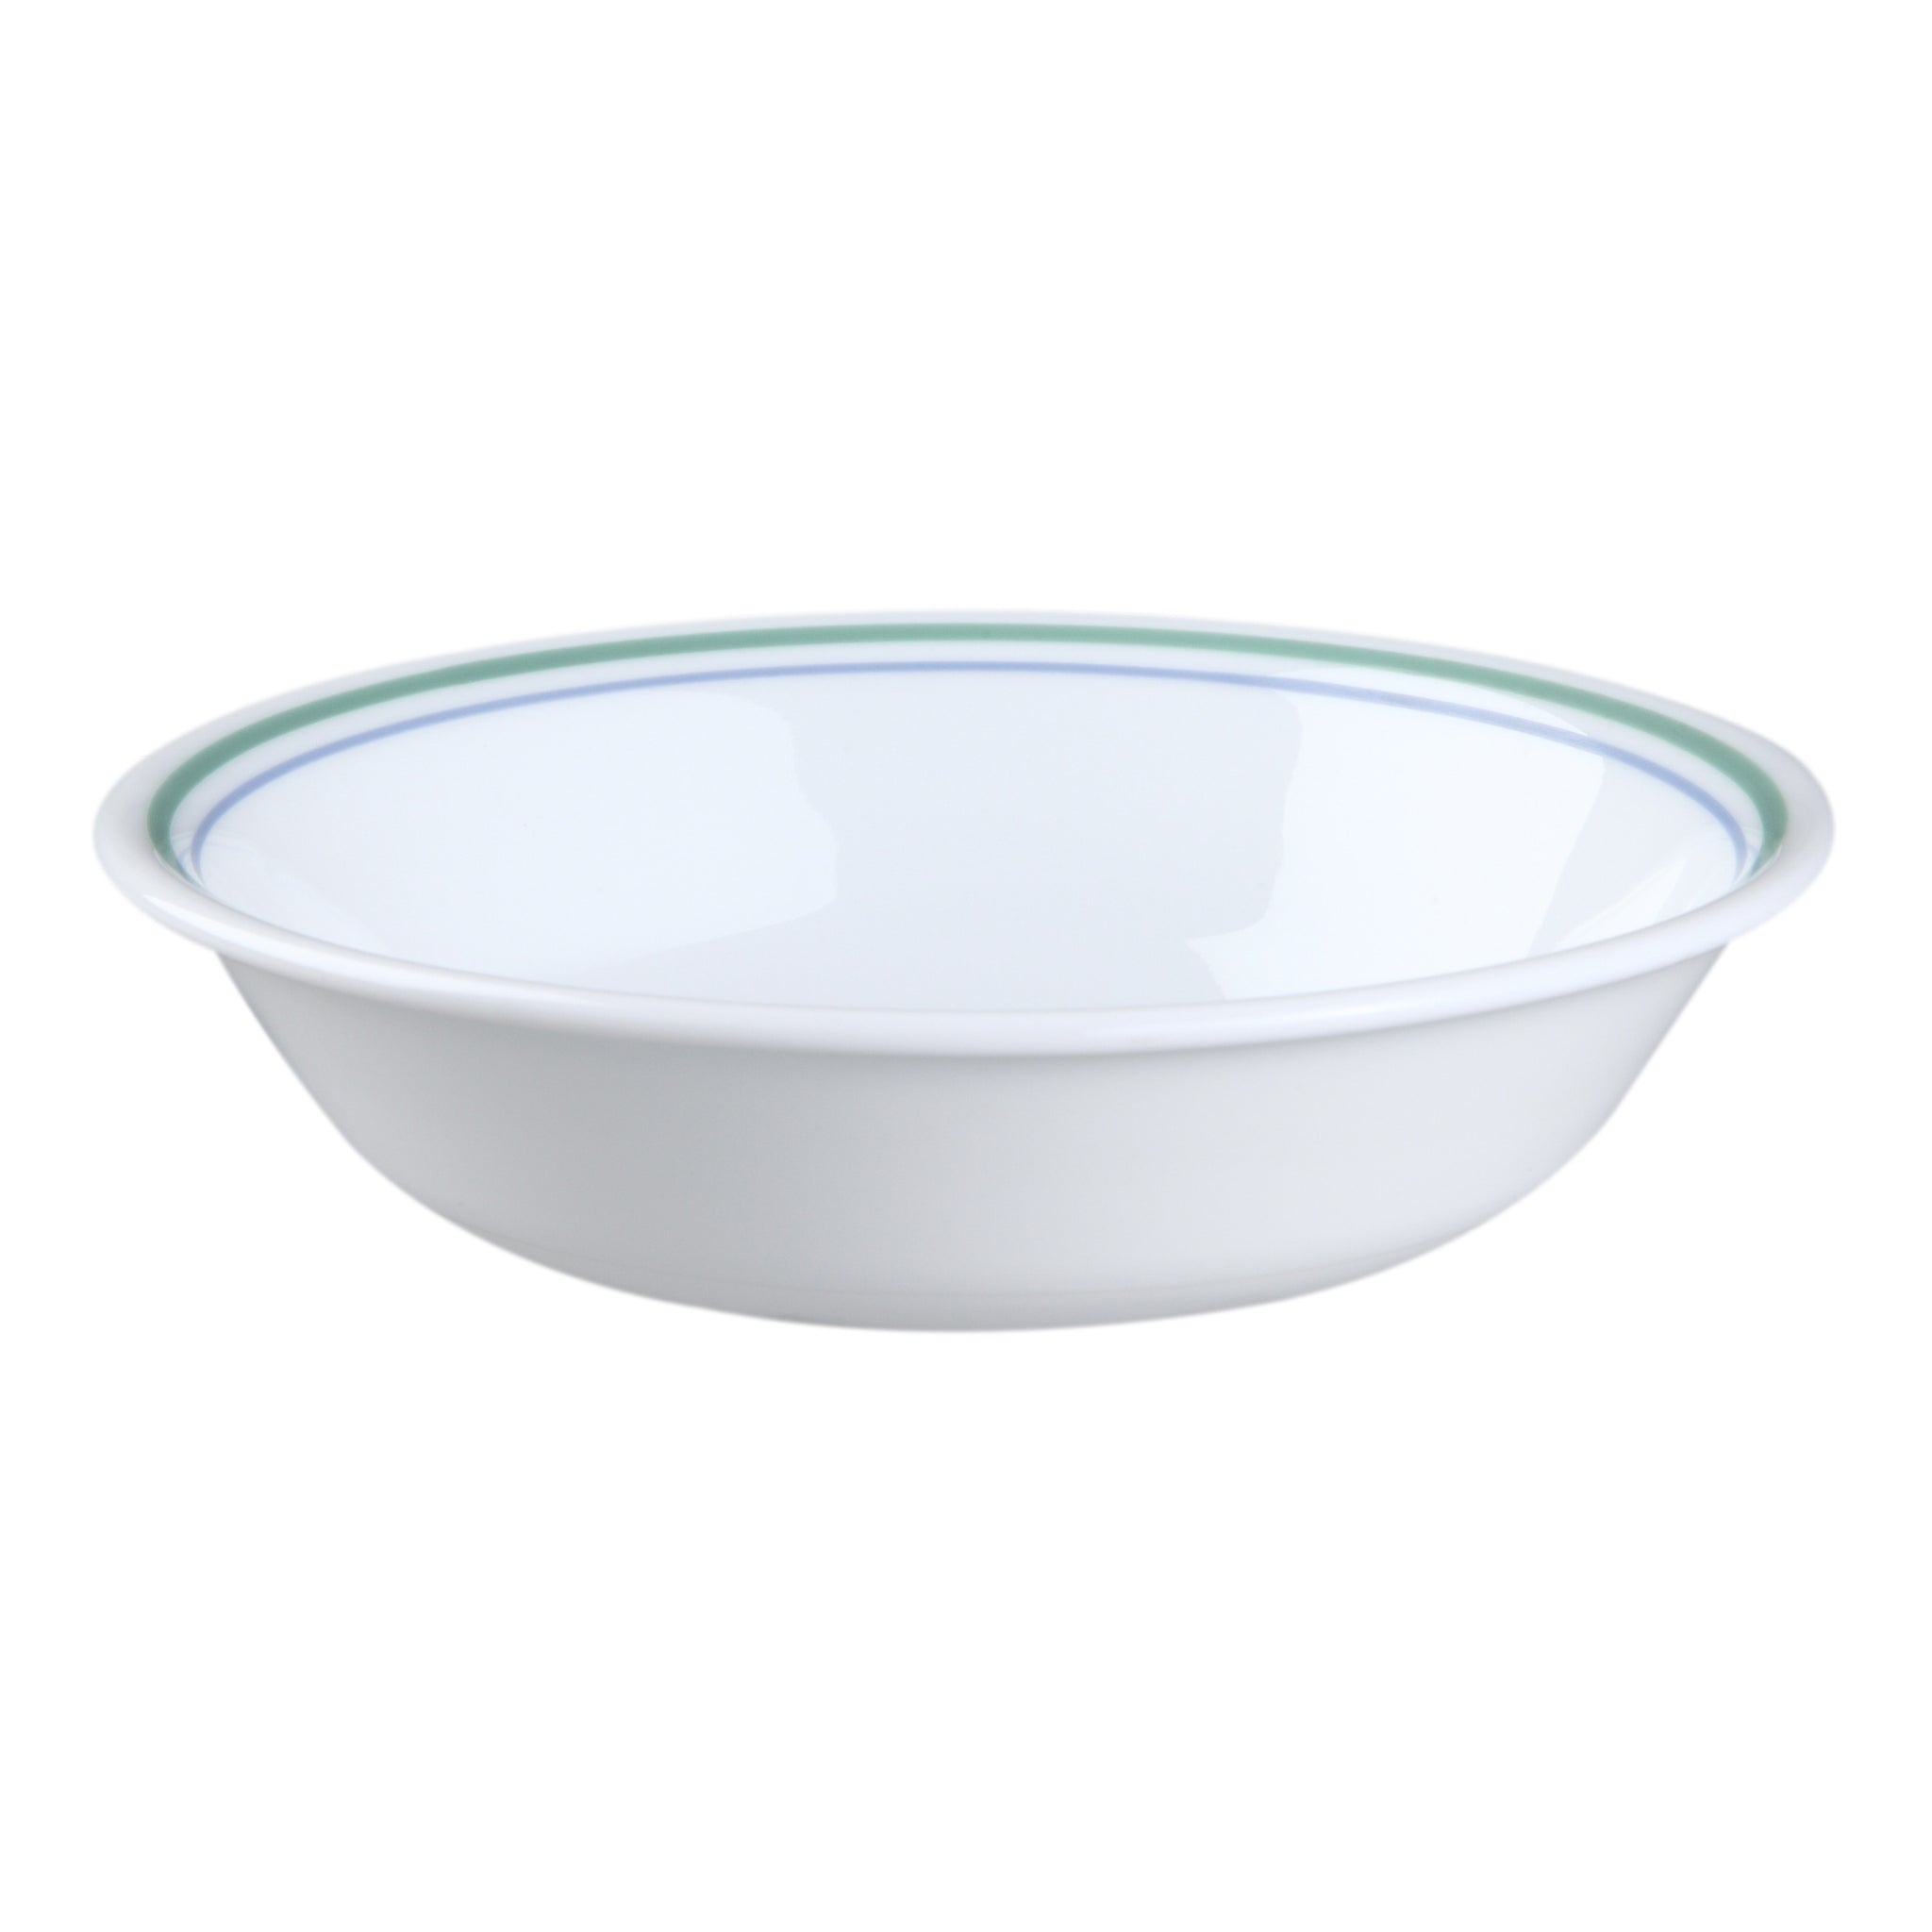 Corelle Classic Country Cottage 290mL Dessert Bowl-6018491